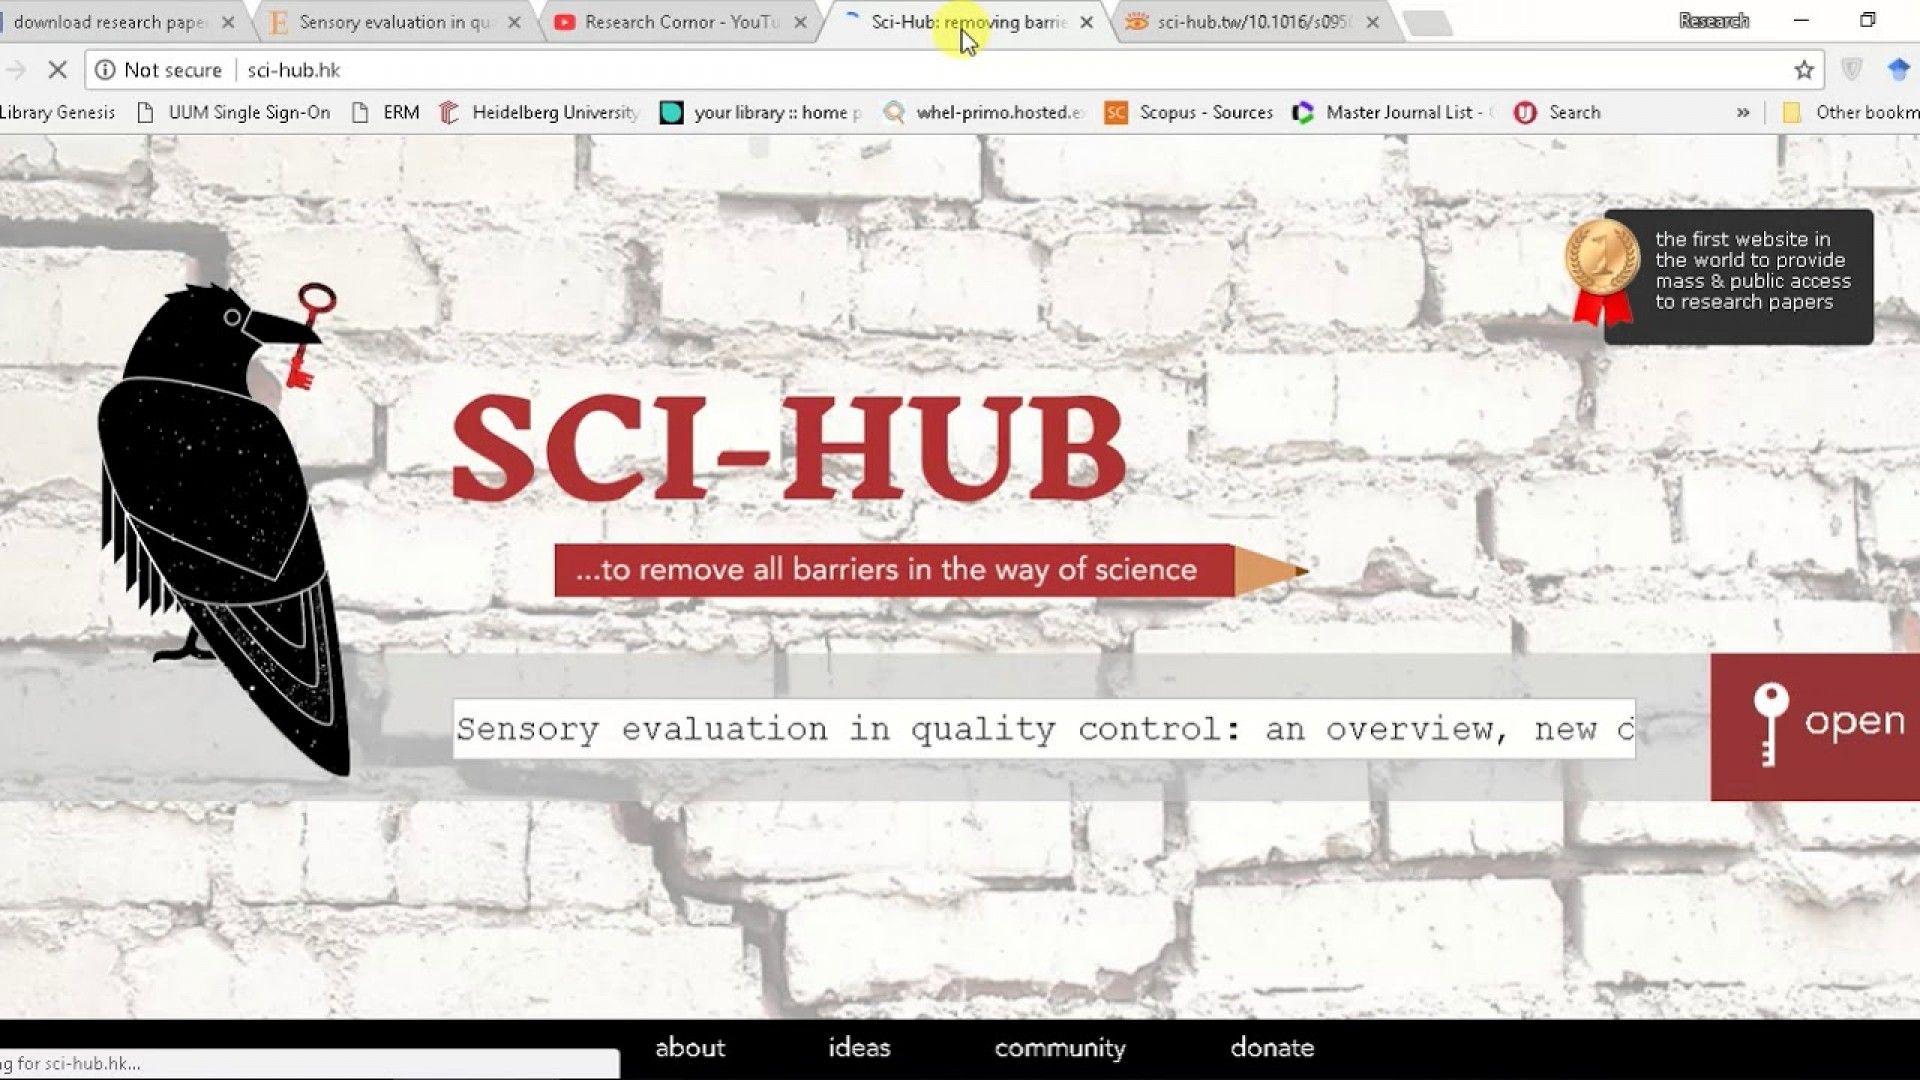 002 Best Site To Download Research Papers Free Paper Unbelievable How From Ieee Google Scholar 1920